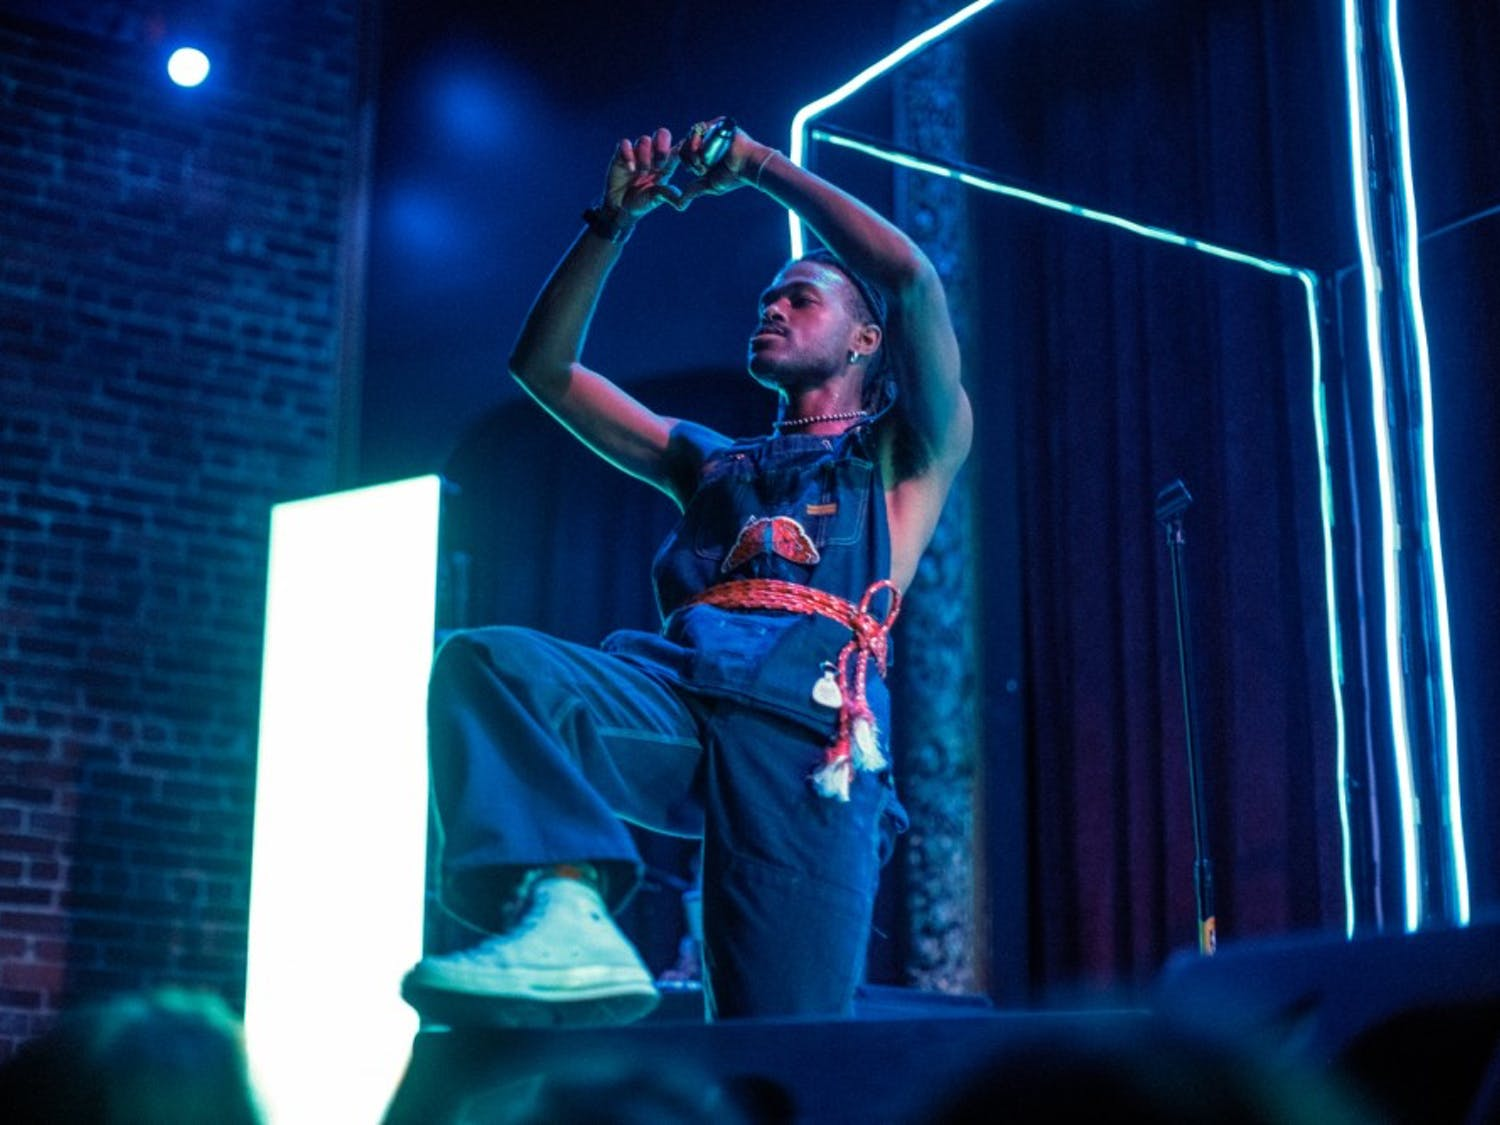 """Los Angeles rapper Duckwrth said he """"inevitably"""" gets his crowds moving. Duckwrth, who is currently on tour, talked with The Spectrum about his musical idols and the current state of hip-hop."""